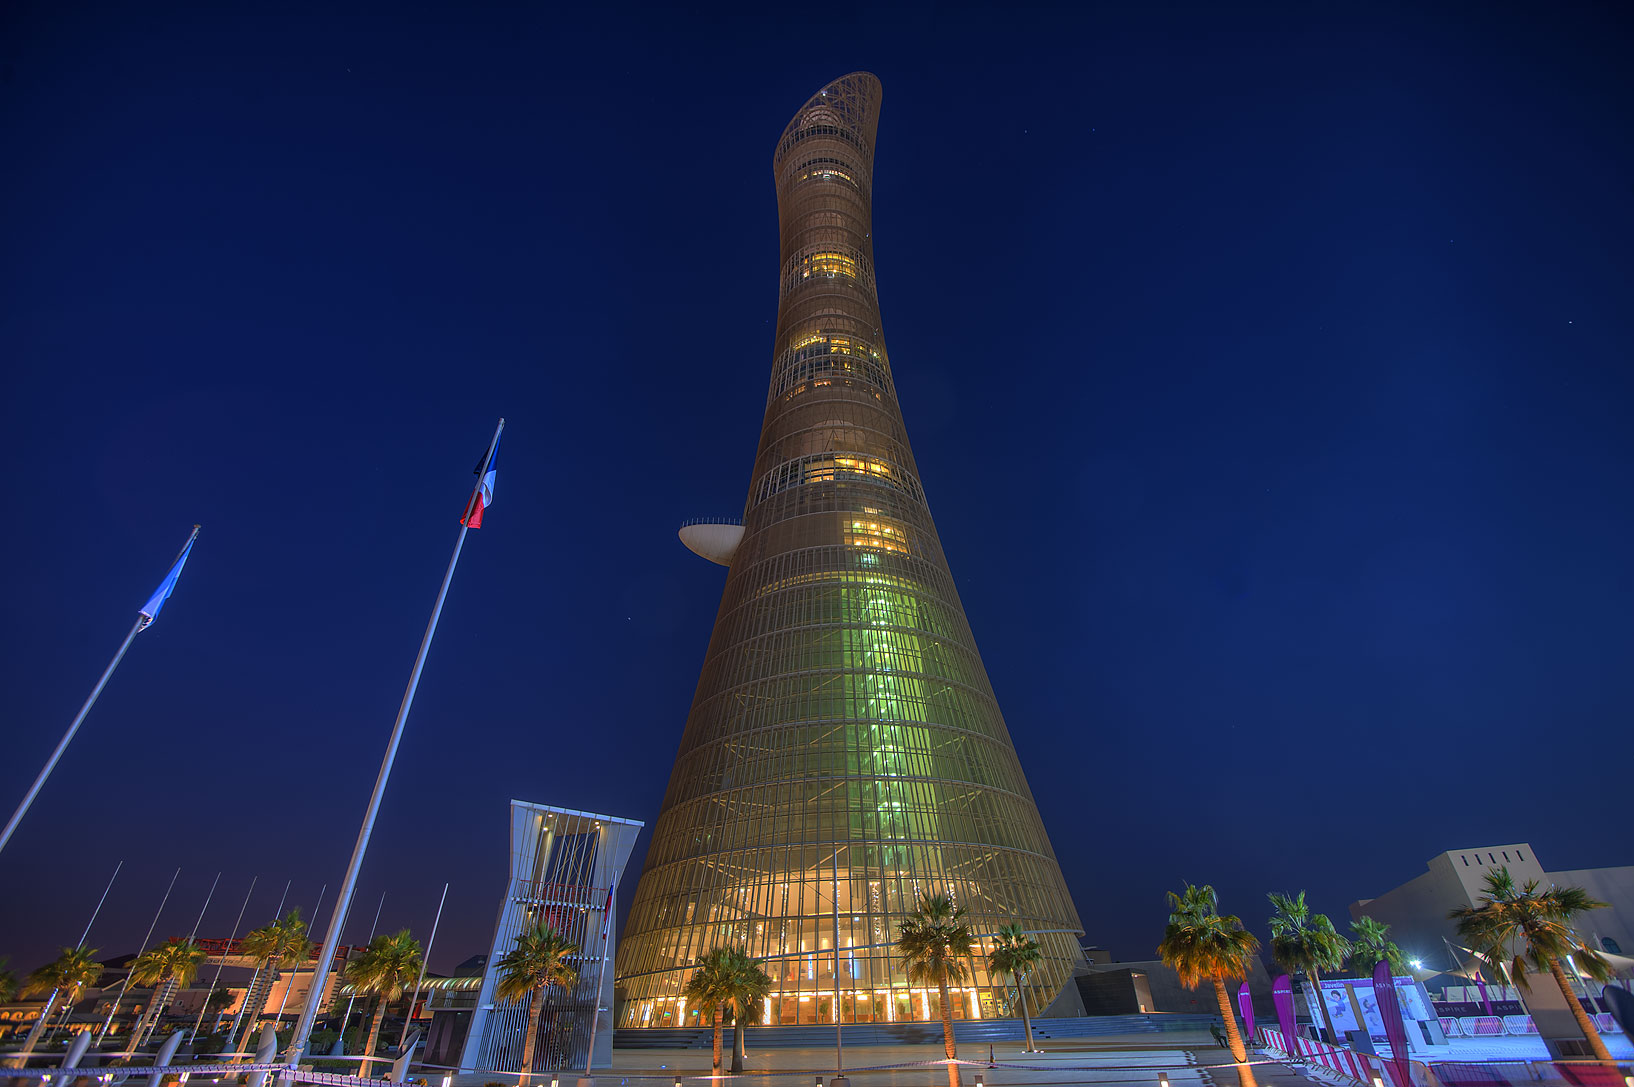 Torch Tower in Aspire Zone. Doha, Qatar